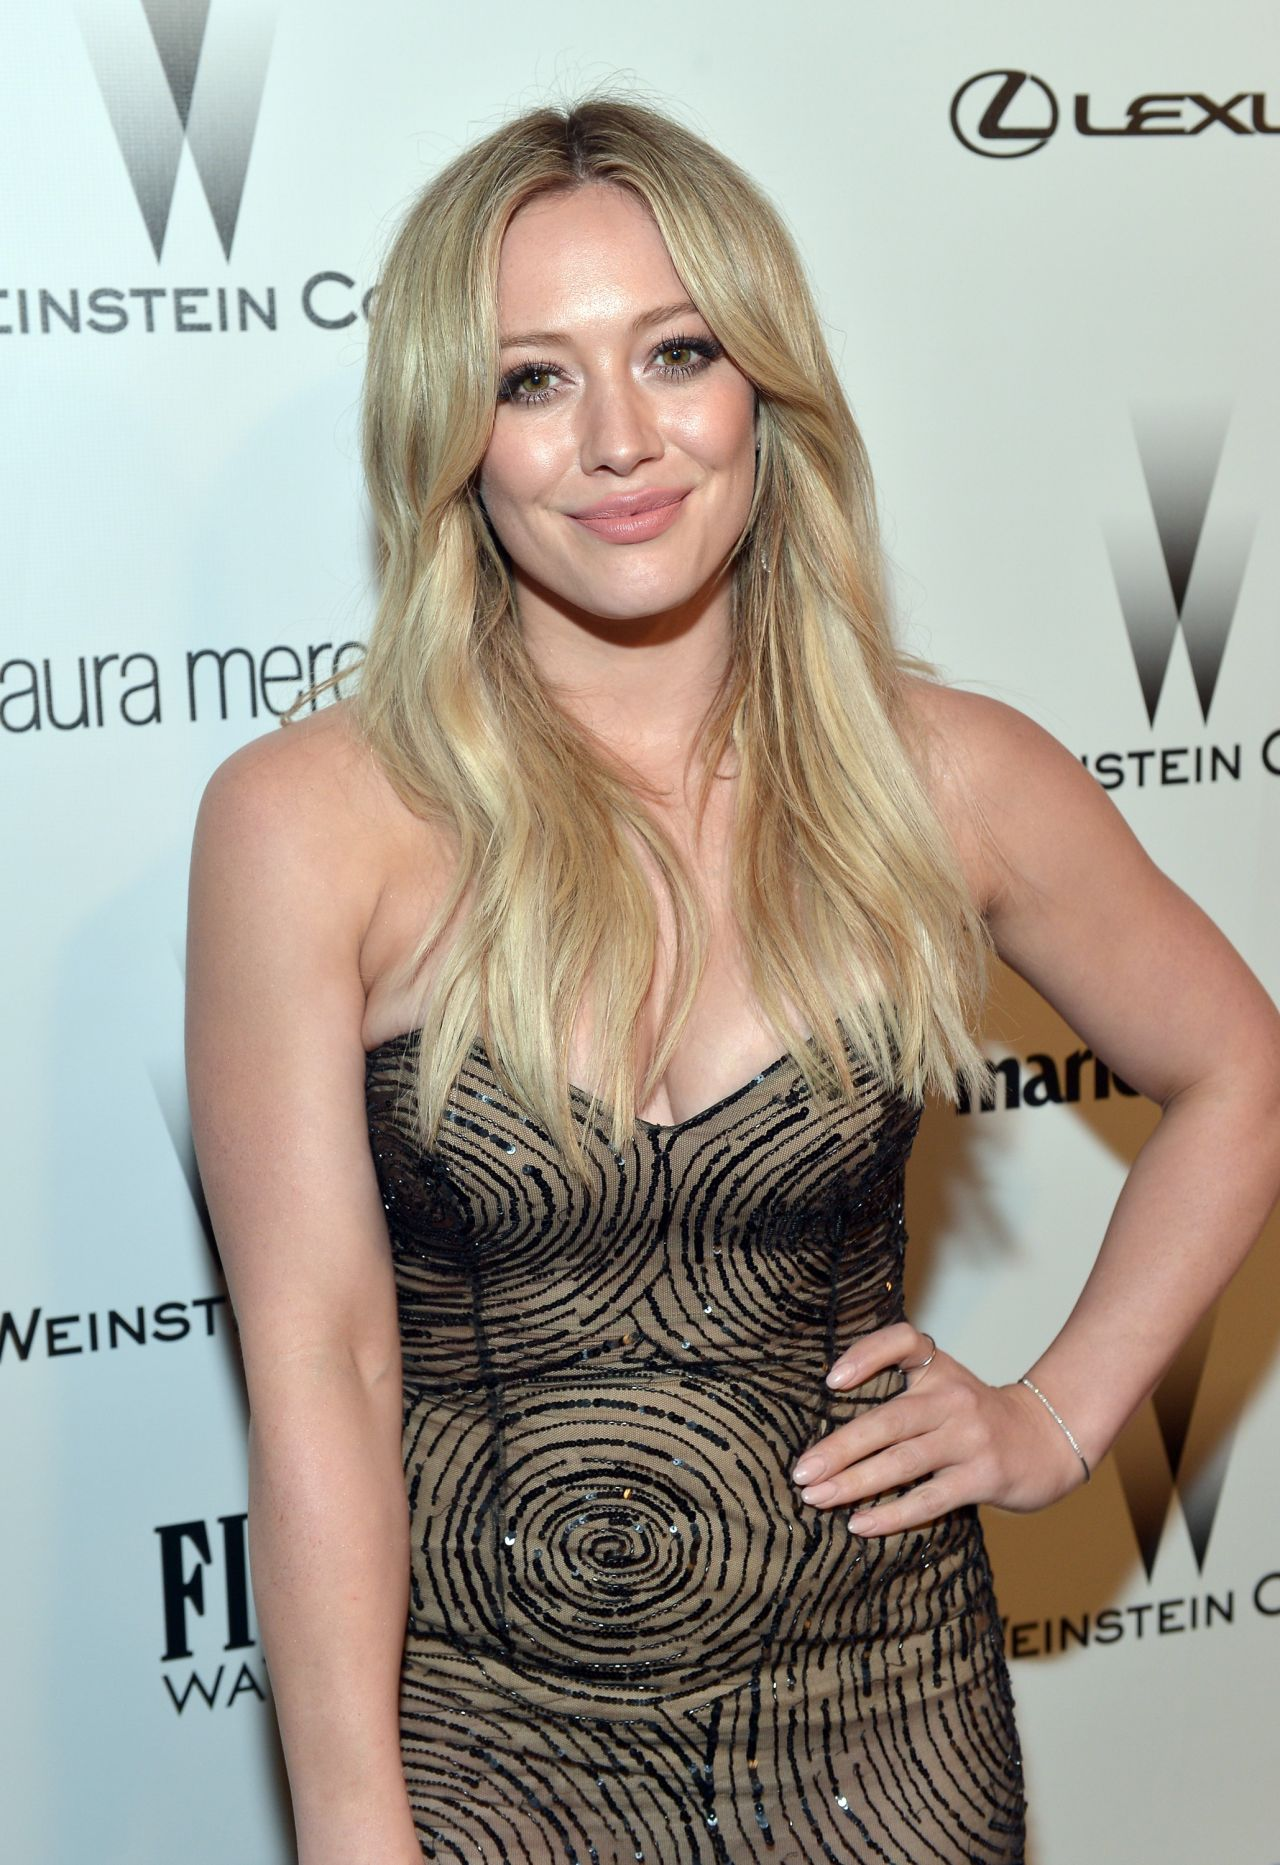 Hilary Duff | Disney Wiki | Fandom powered by Wikia Hilary Duff